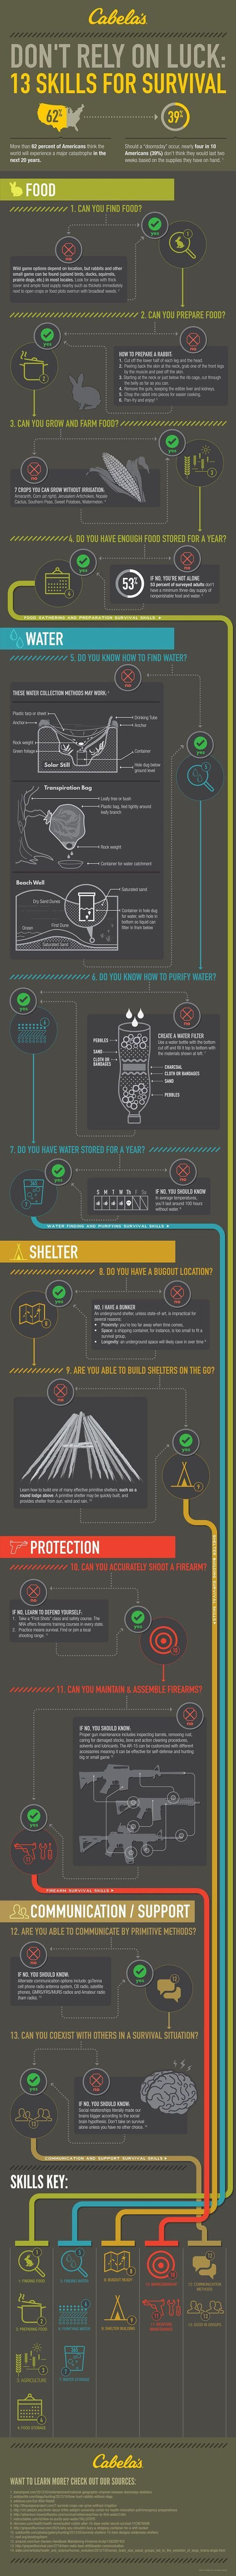 13 Top Survival Skills | Learn Now, Survive Later | Doomsday Prepping For Beginners Or Seasoned Prepper by Survival Life at http://survivallife.com/2015/12/09/survival-skills-infographic/: #ad